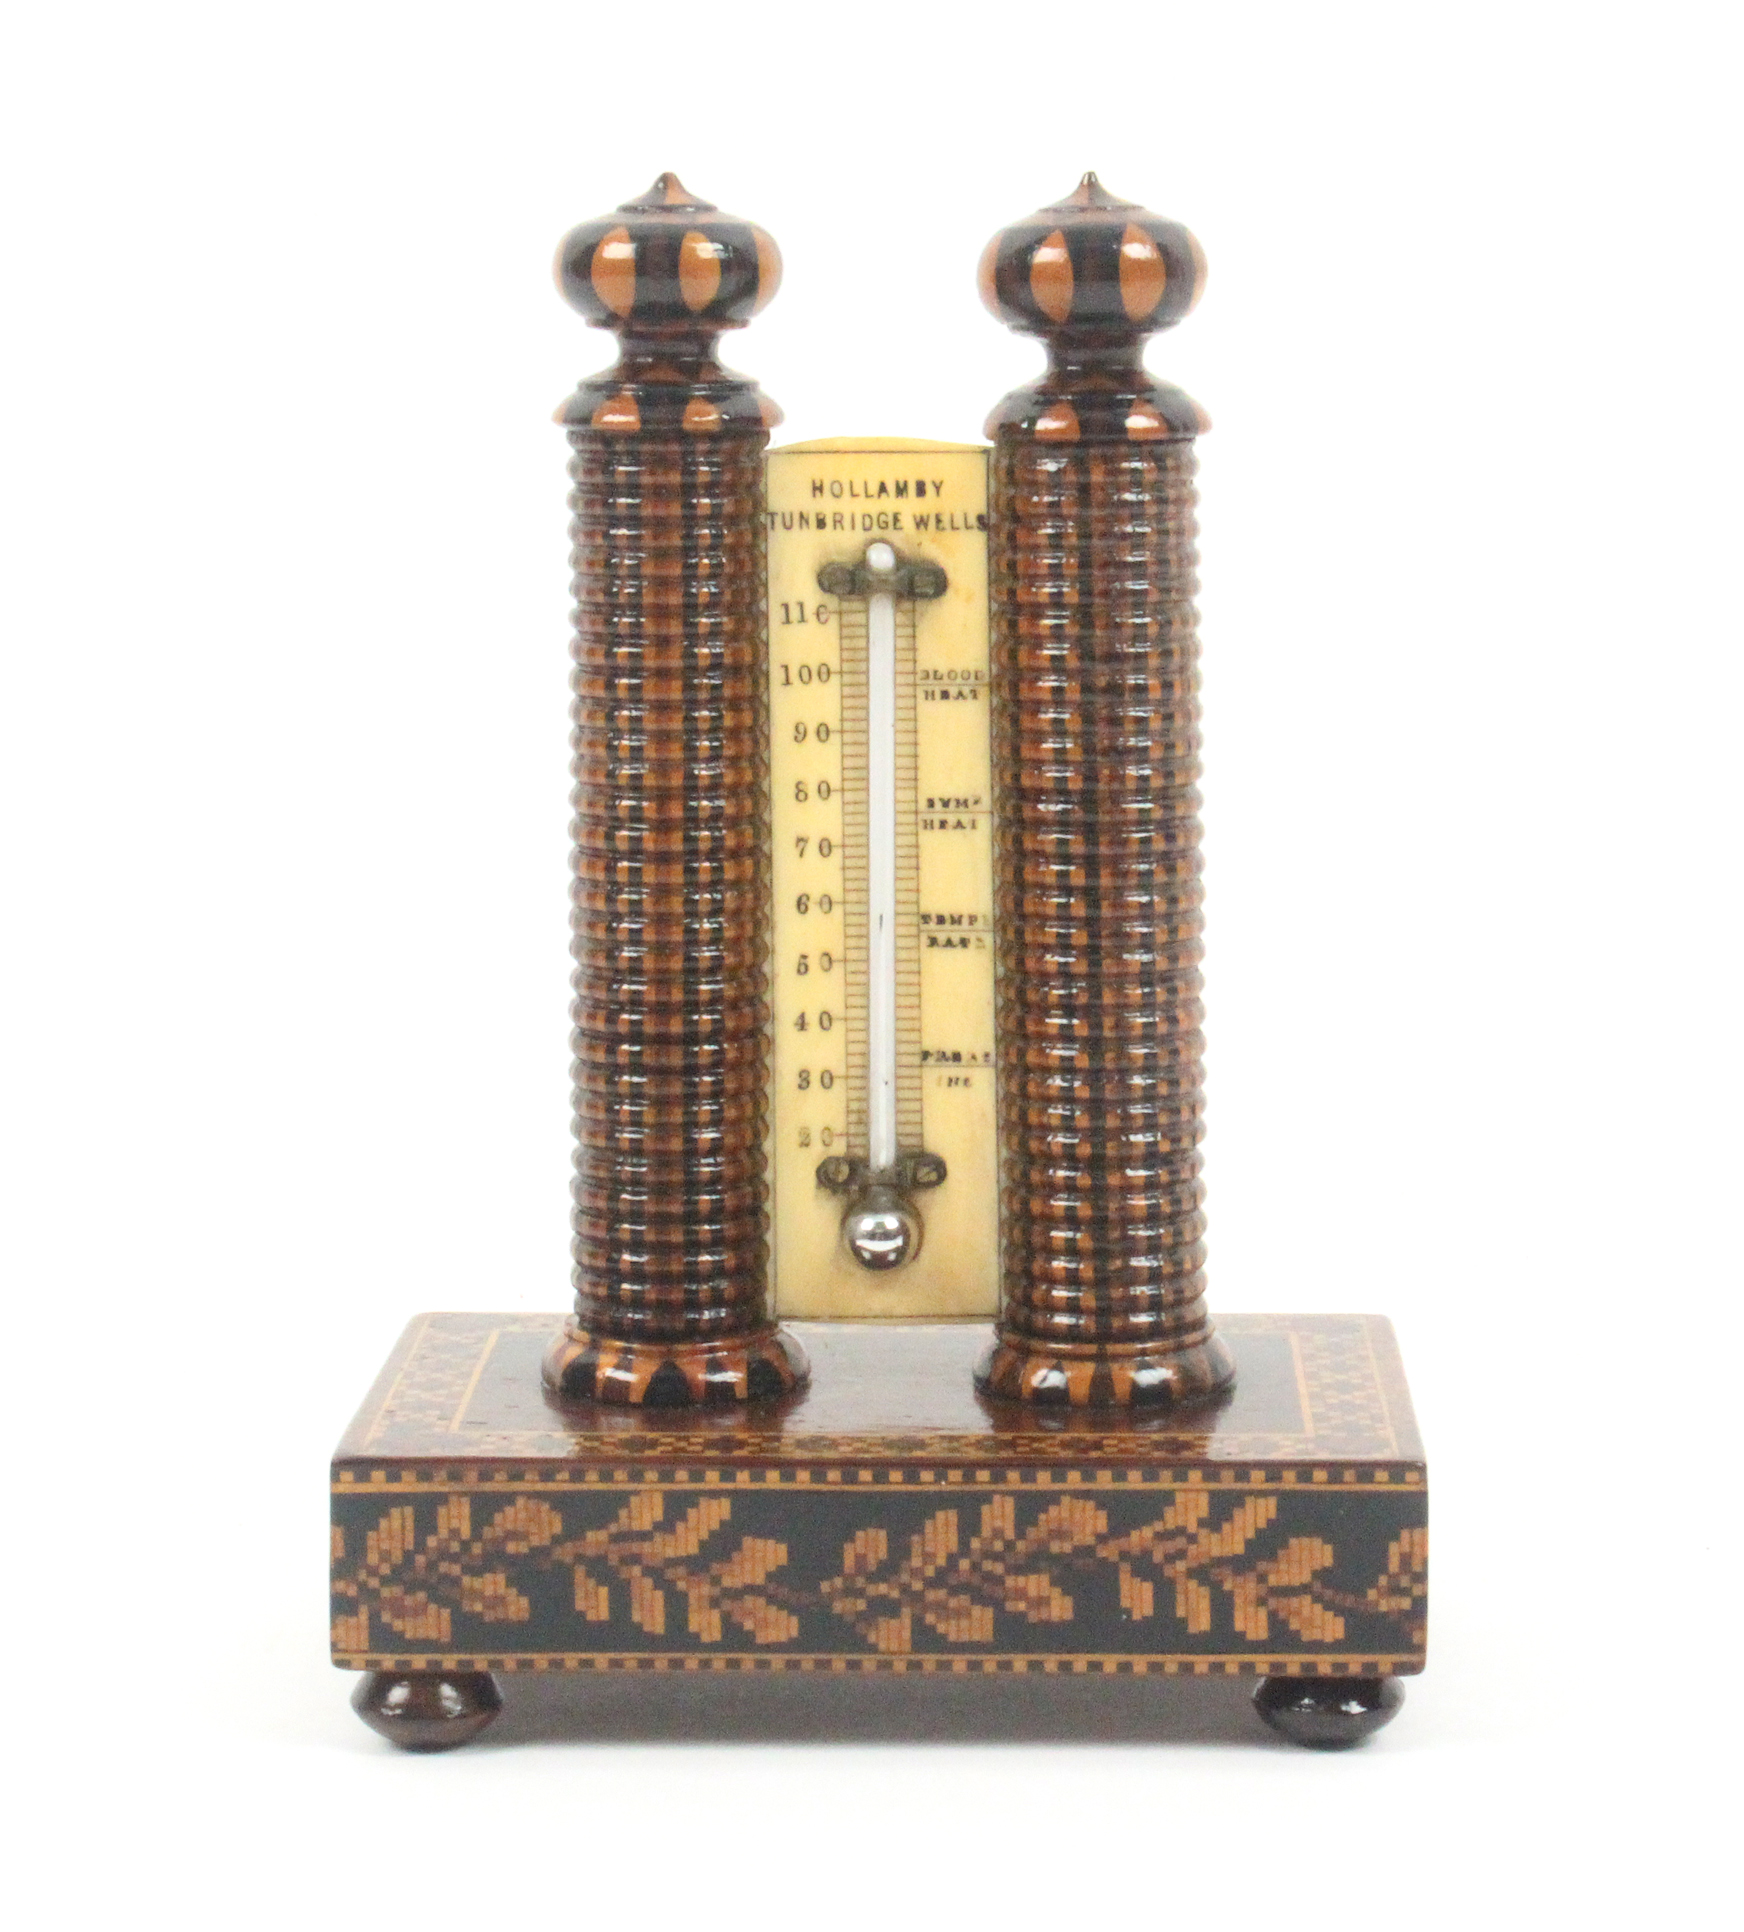 Lot 34 - A good Tunbridge ware thermometer stand, the ivory scale with mercury thermometer and inscribed '